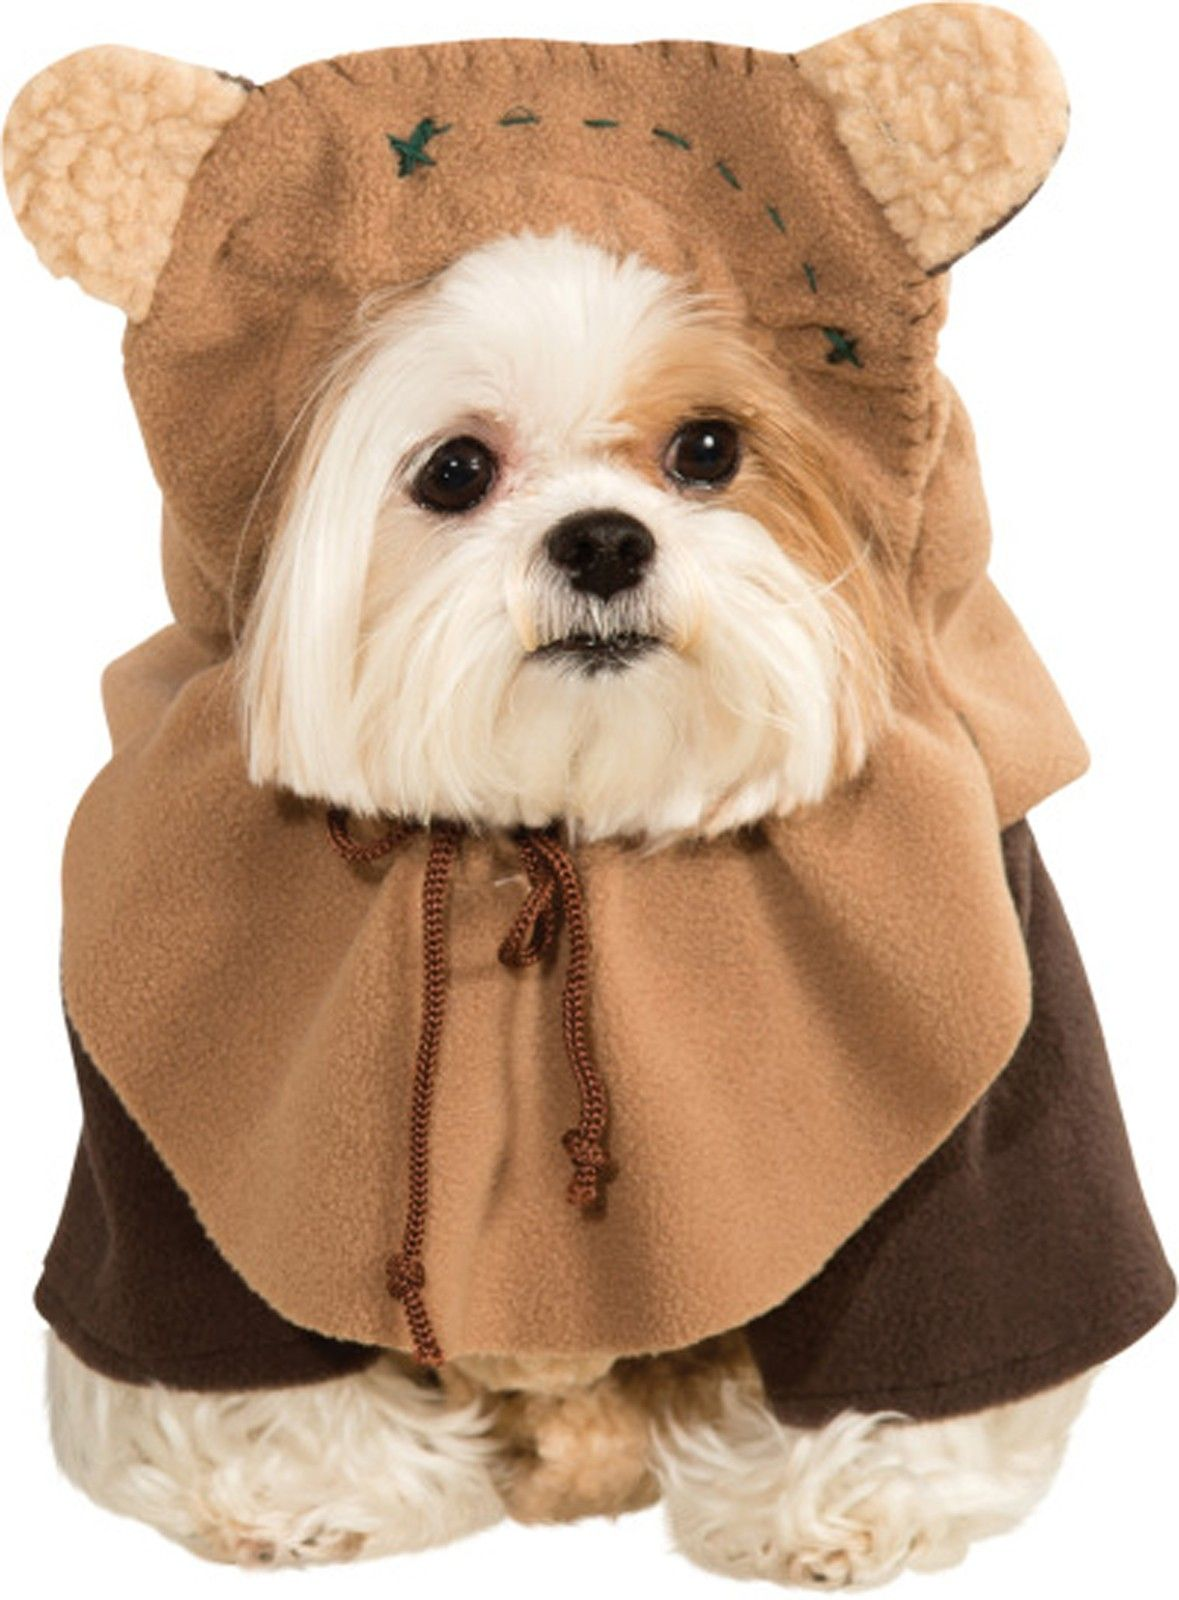 Pin By Coolpoppy15 On Dogs Star Wars Dog Costumes Star Wars Pet